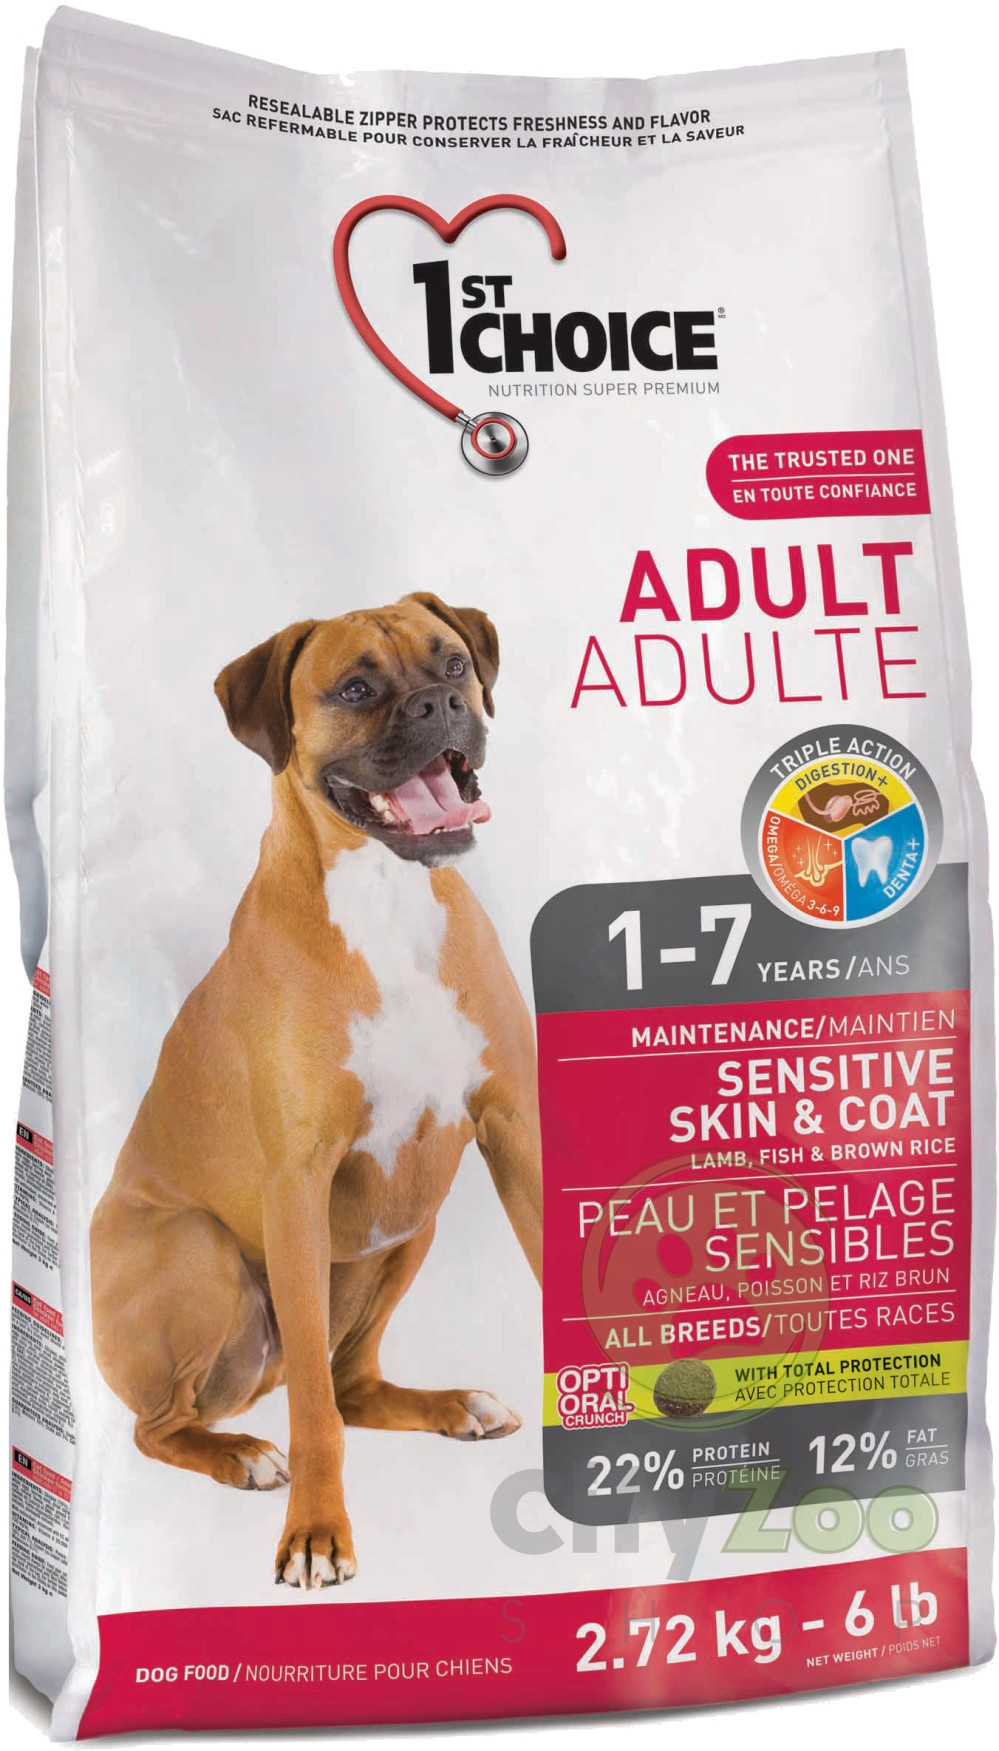 zoo/1st_Choice_Adult_Sensitive_Skin_amp-_Coat_All_Breeds